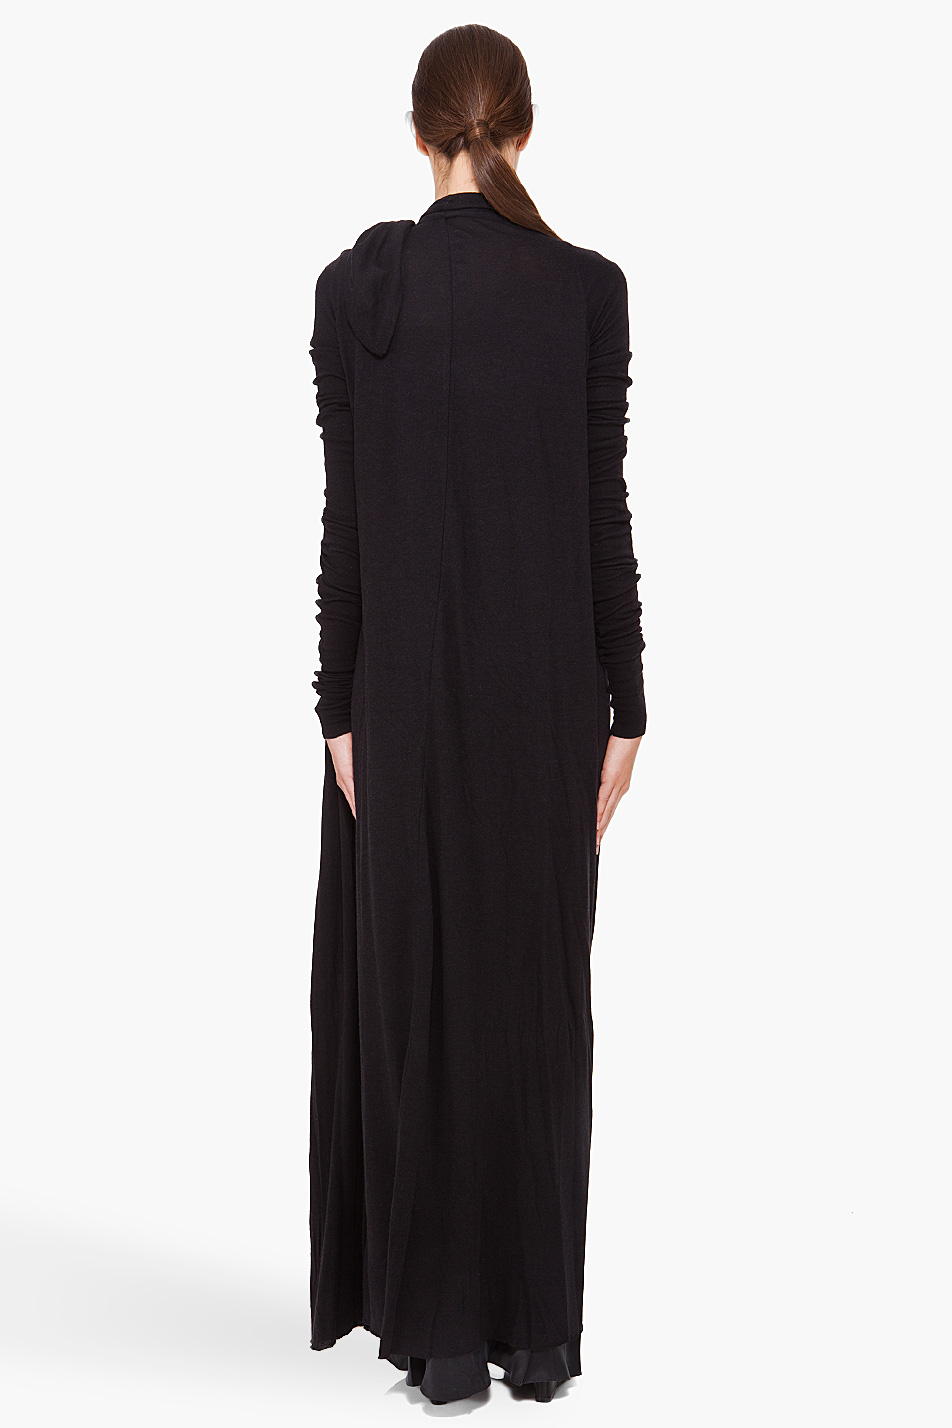 Rick owens lilies Extra Long Cardigan in Black | Lyst